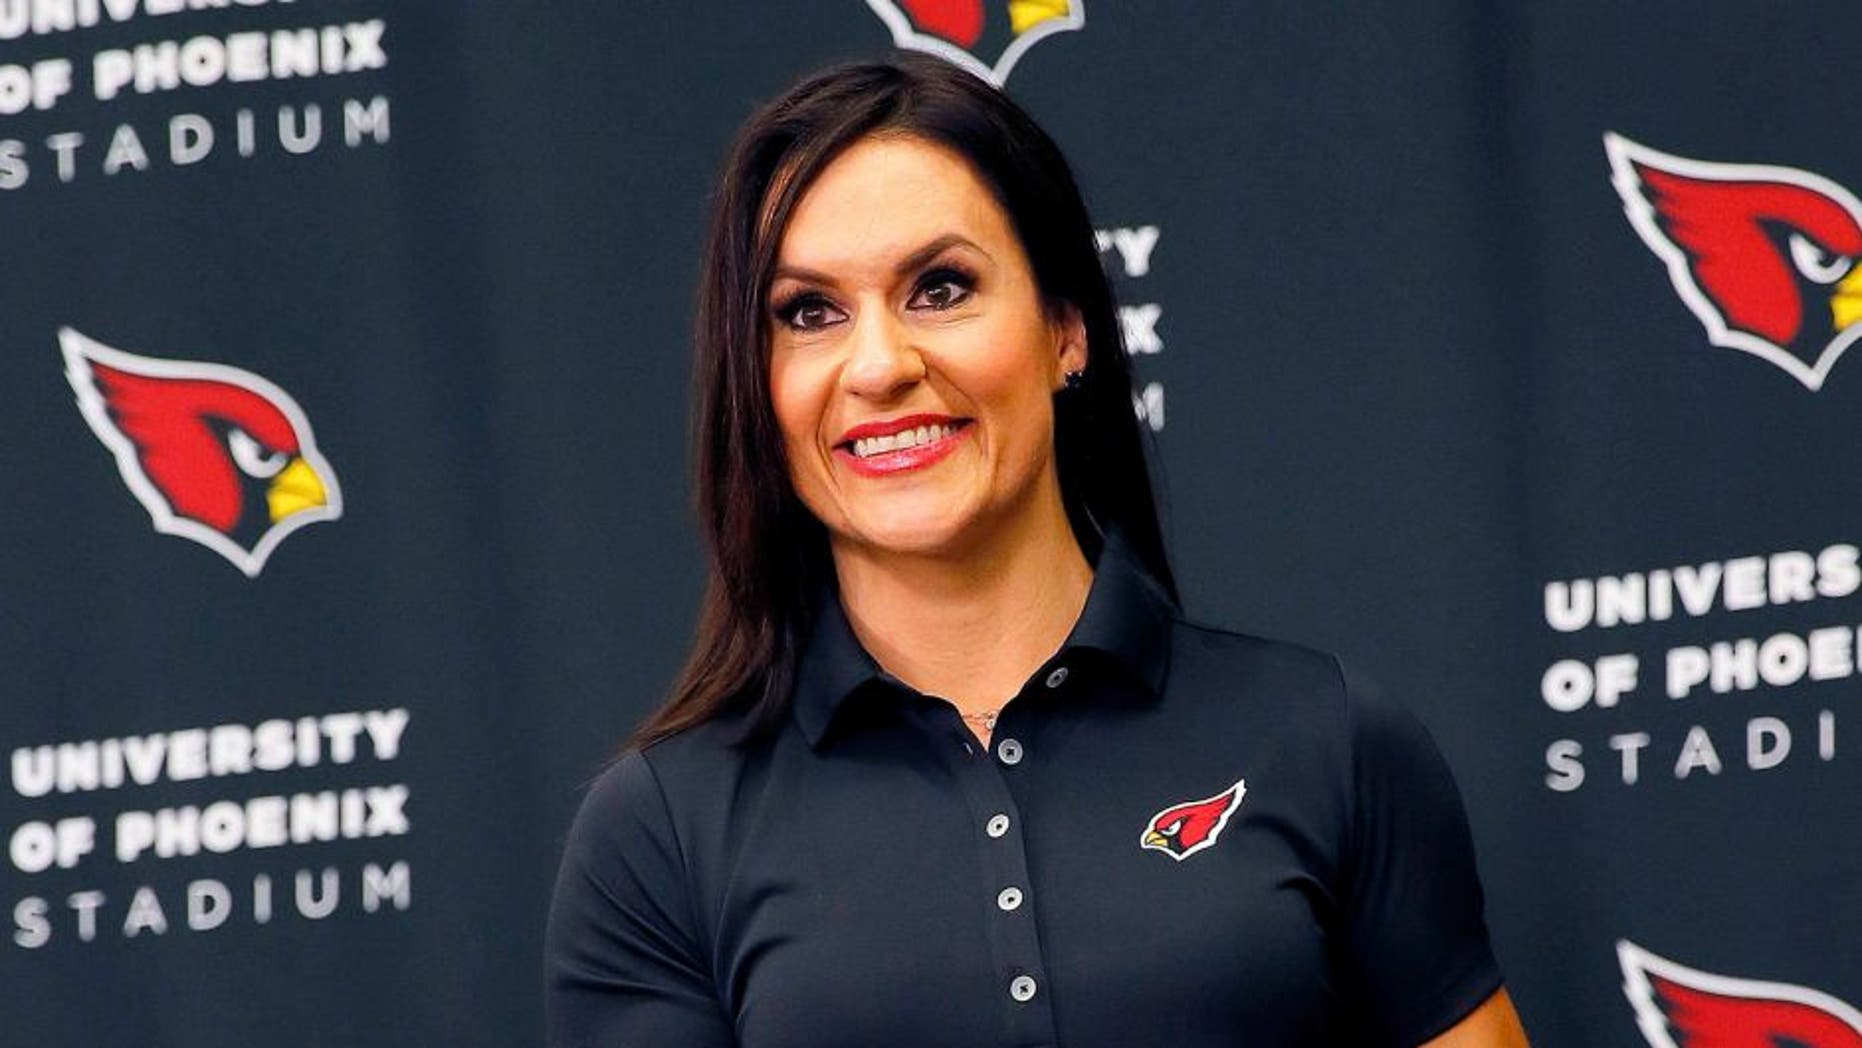 Arizona Cardinals training camp football coach Dr. Jen Welter poses for photographers after being introduced, Tuesday, July 28, 2015, at the teams' training facility in Tempe, Ariz. Welter is believed to be the first female to hold a coaching position of any kind in the NFL and will be member of the Cardinals coaching staff throughout training camp and the preseason, working with inside linebackers. (AP Photo/Matt York)